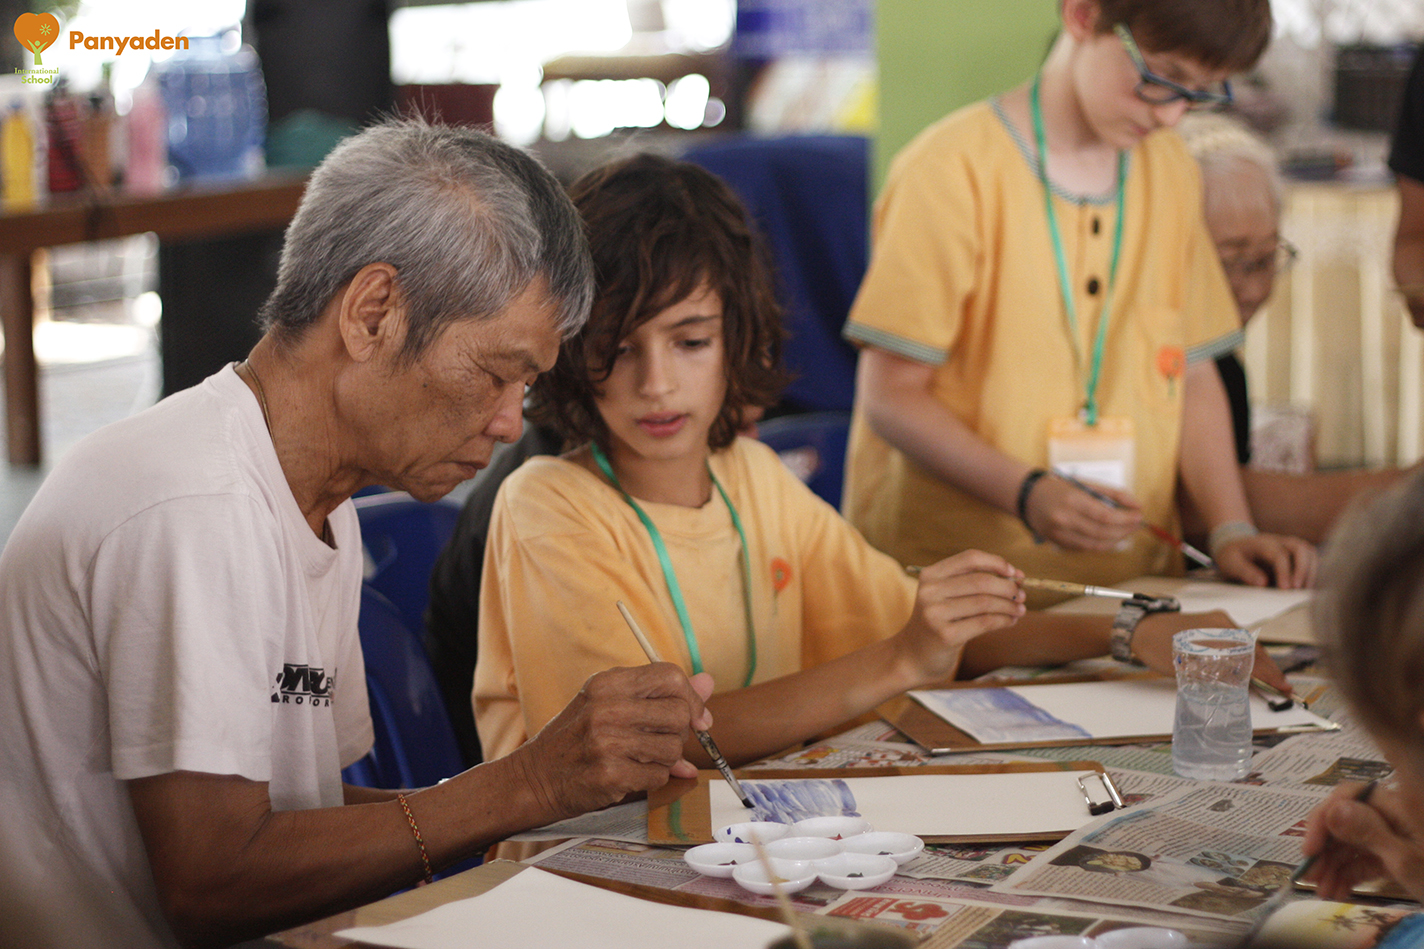 Panyaden Social Contribution Day: Primary student painting with elderly at elder aId home in Chiang Mai